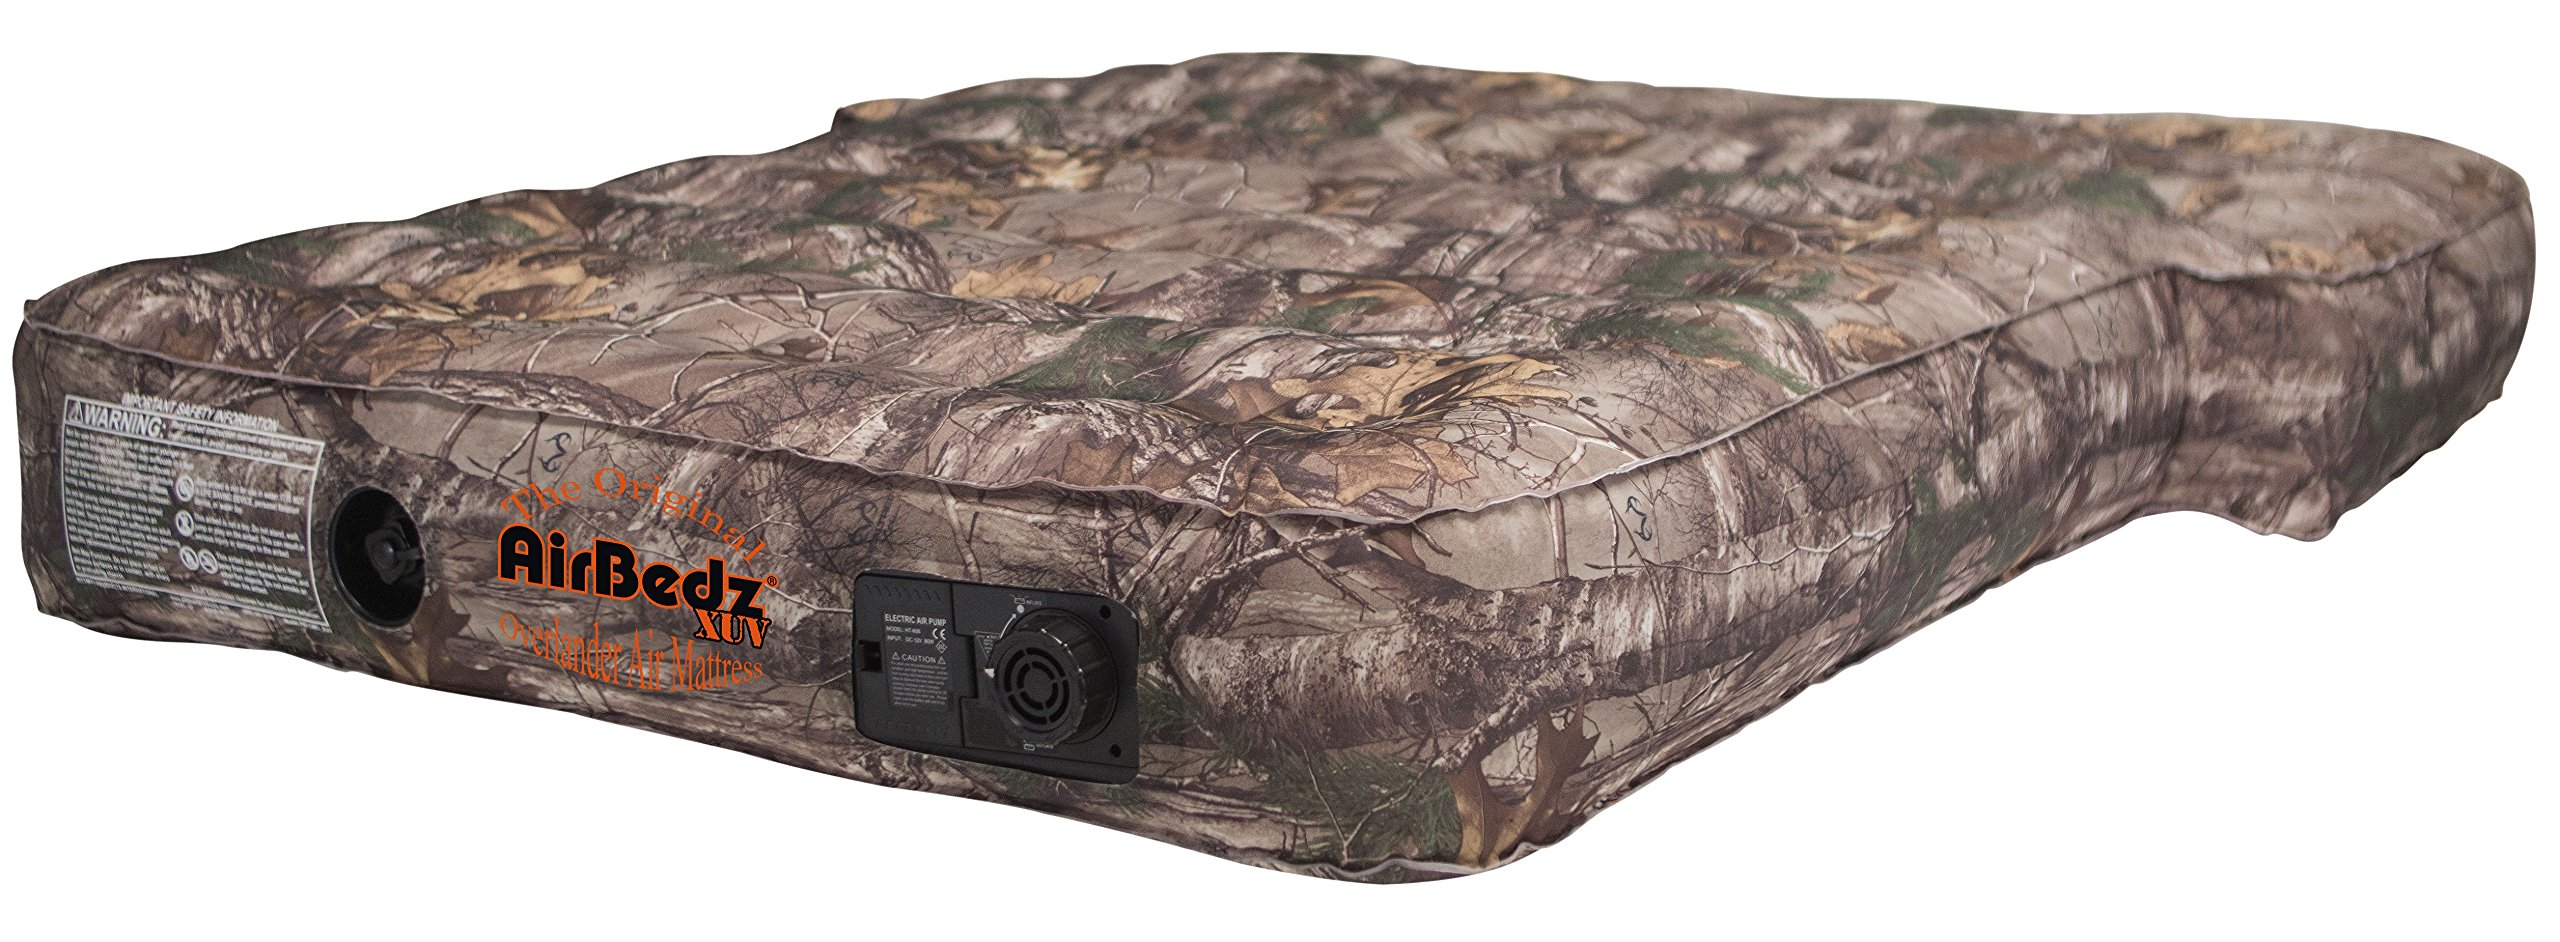 AirBedz PPI-CMO_XUV Camouflage Jeep, SUV & Crossover Vehicle Rear Seats Mattress (with Built-in Rechargeable Battery Air Pump) by AirBedz